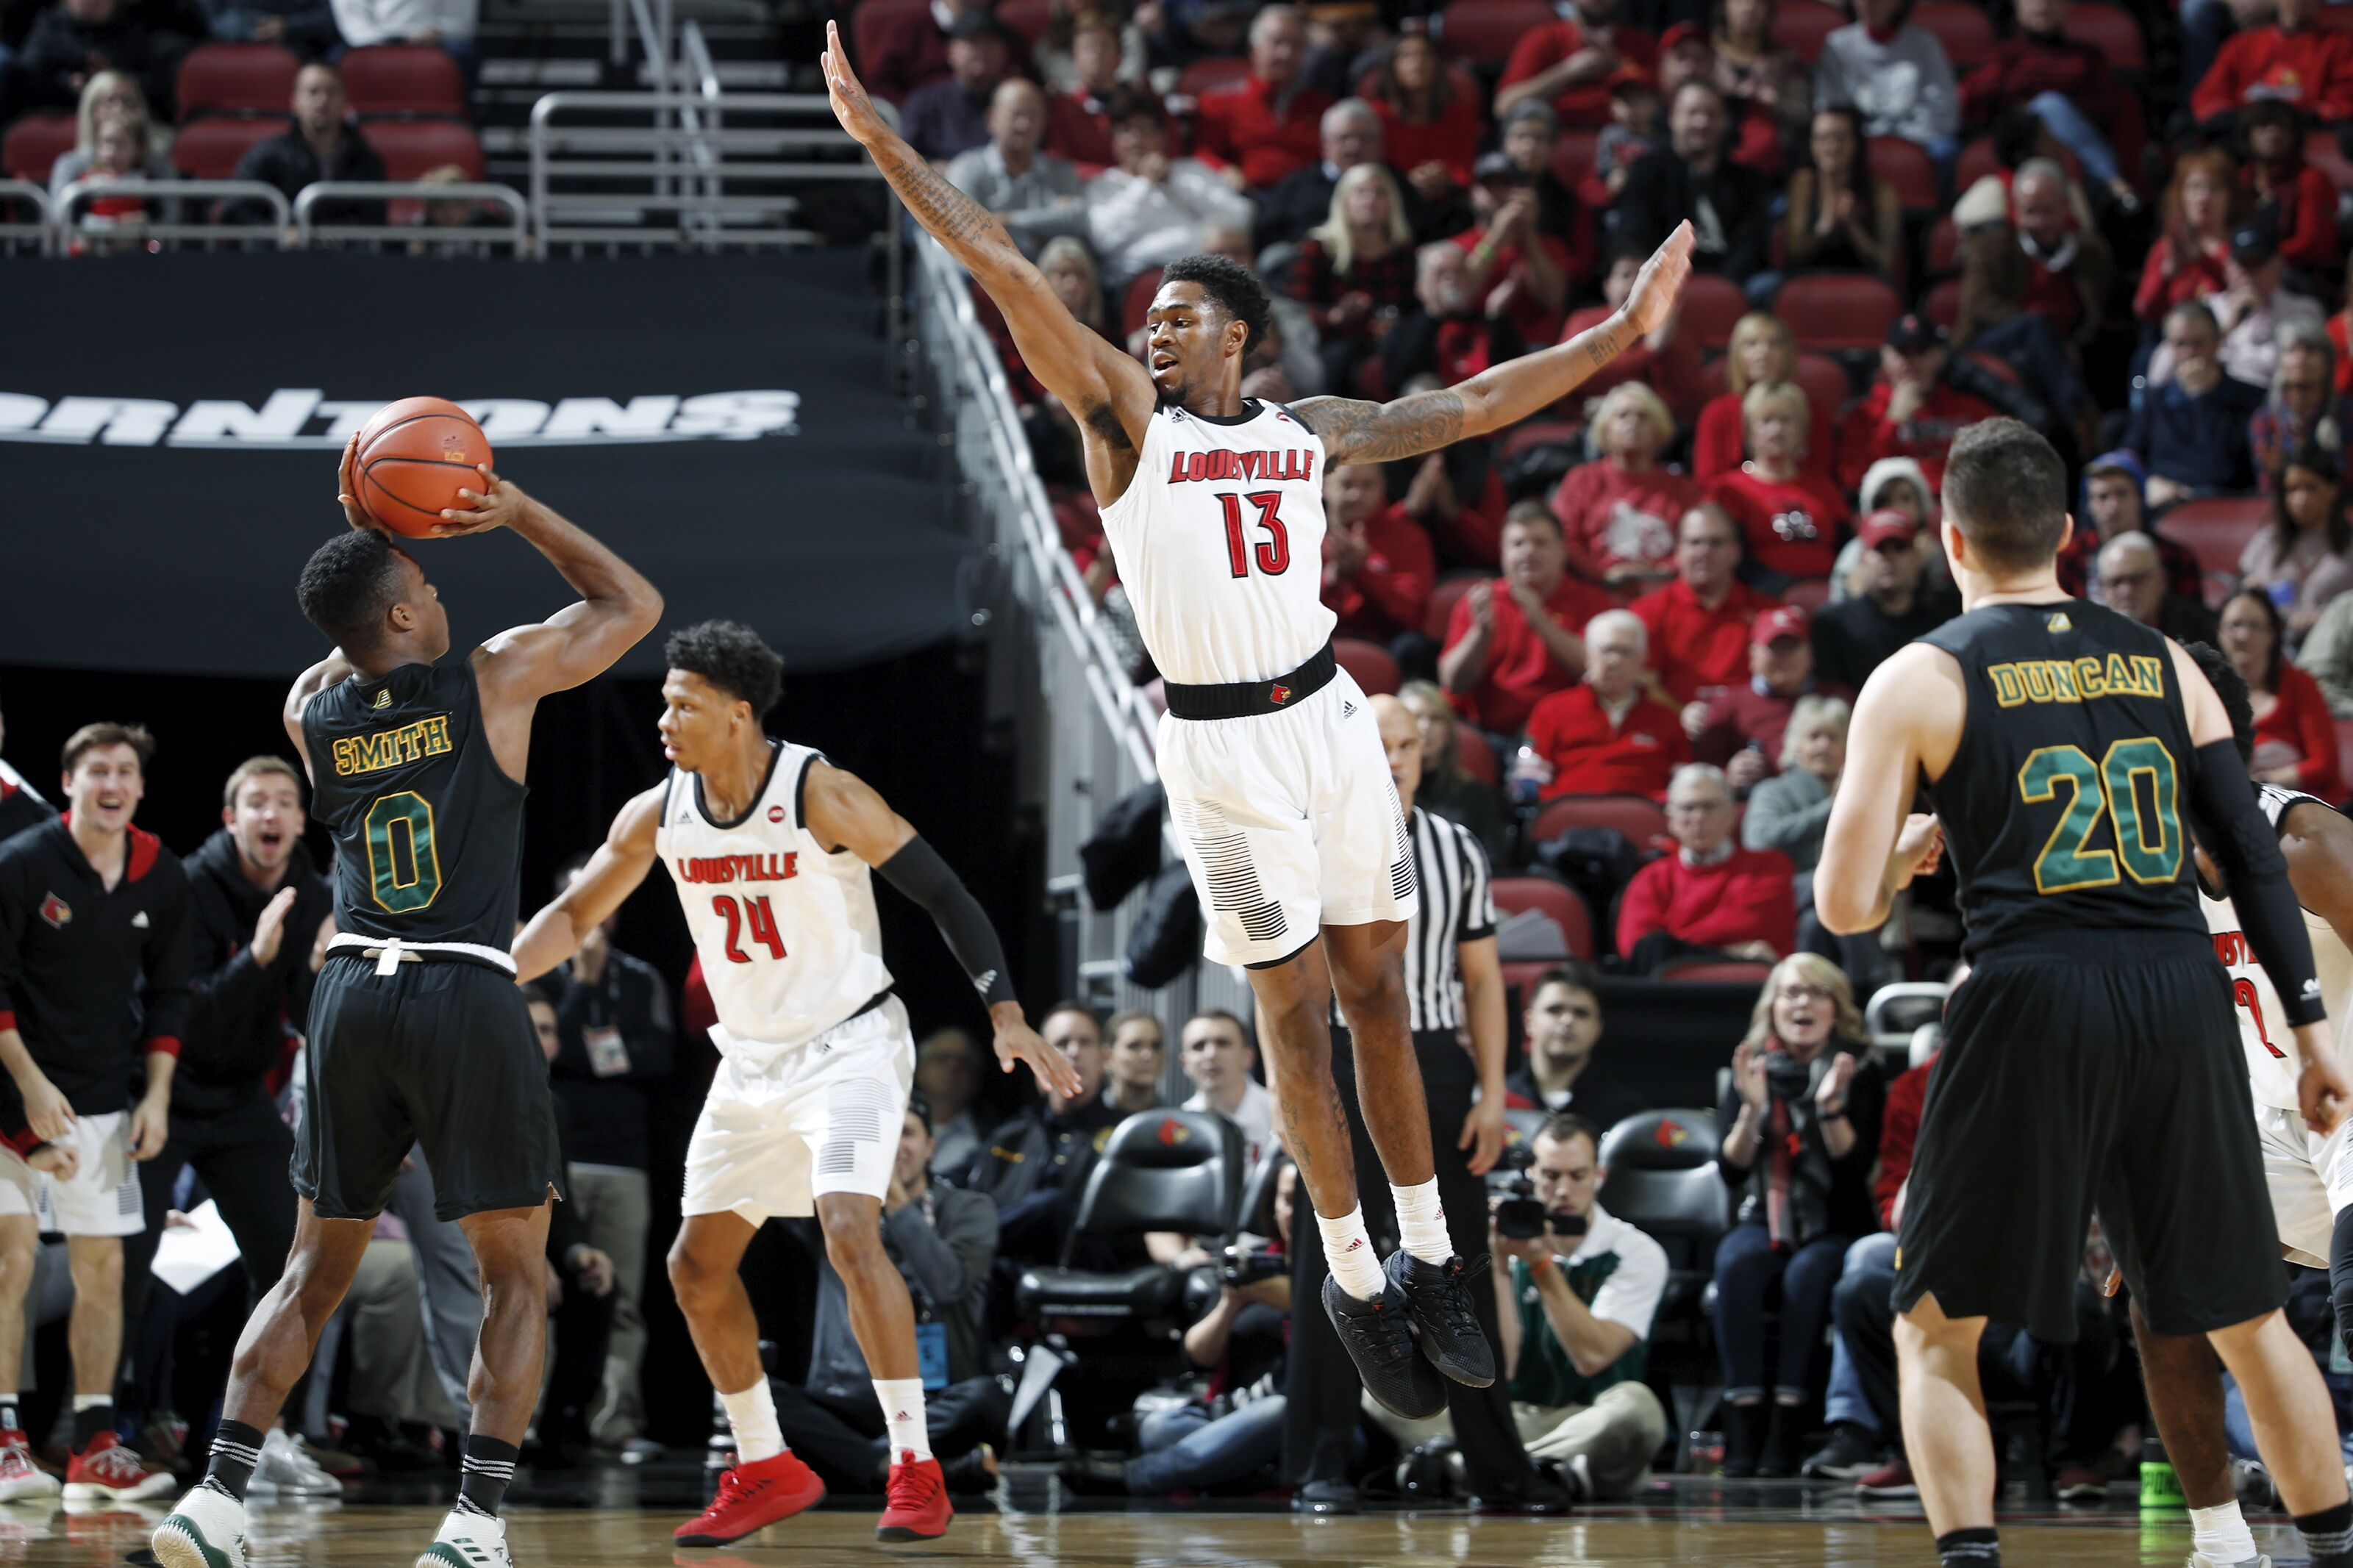 Louisville basketball has toughest schedule, toughest stretch in country.